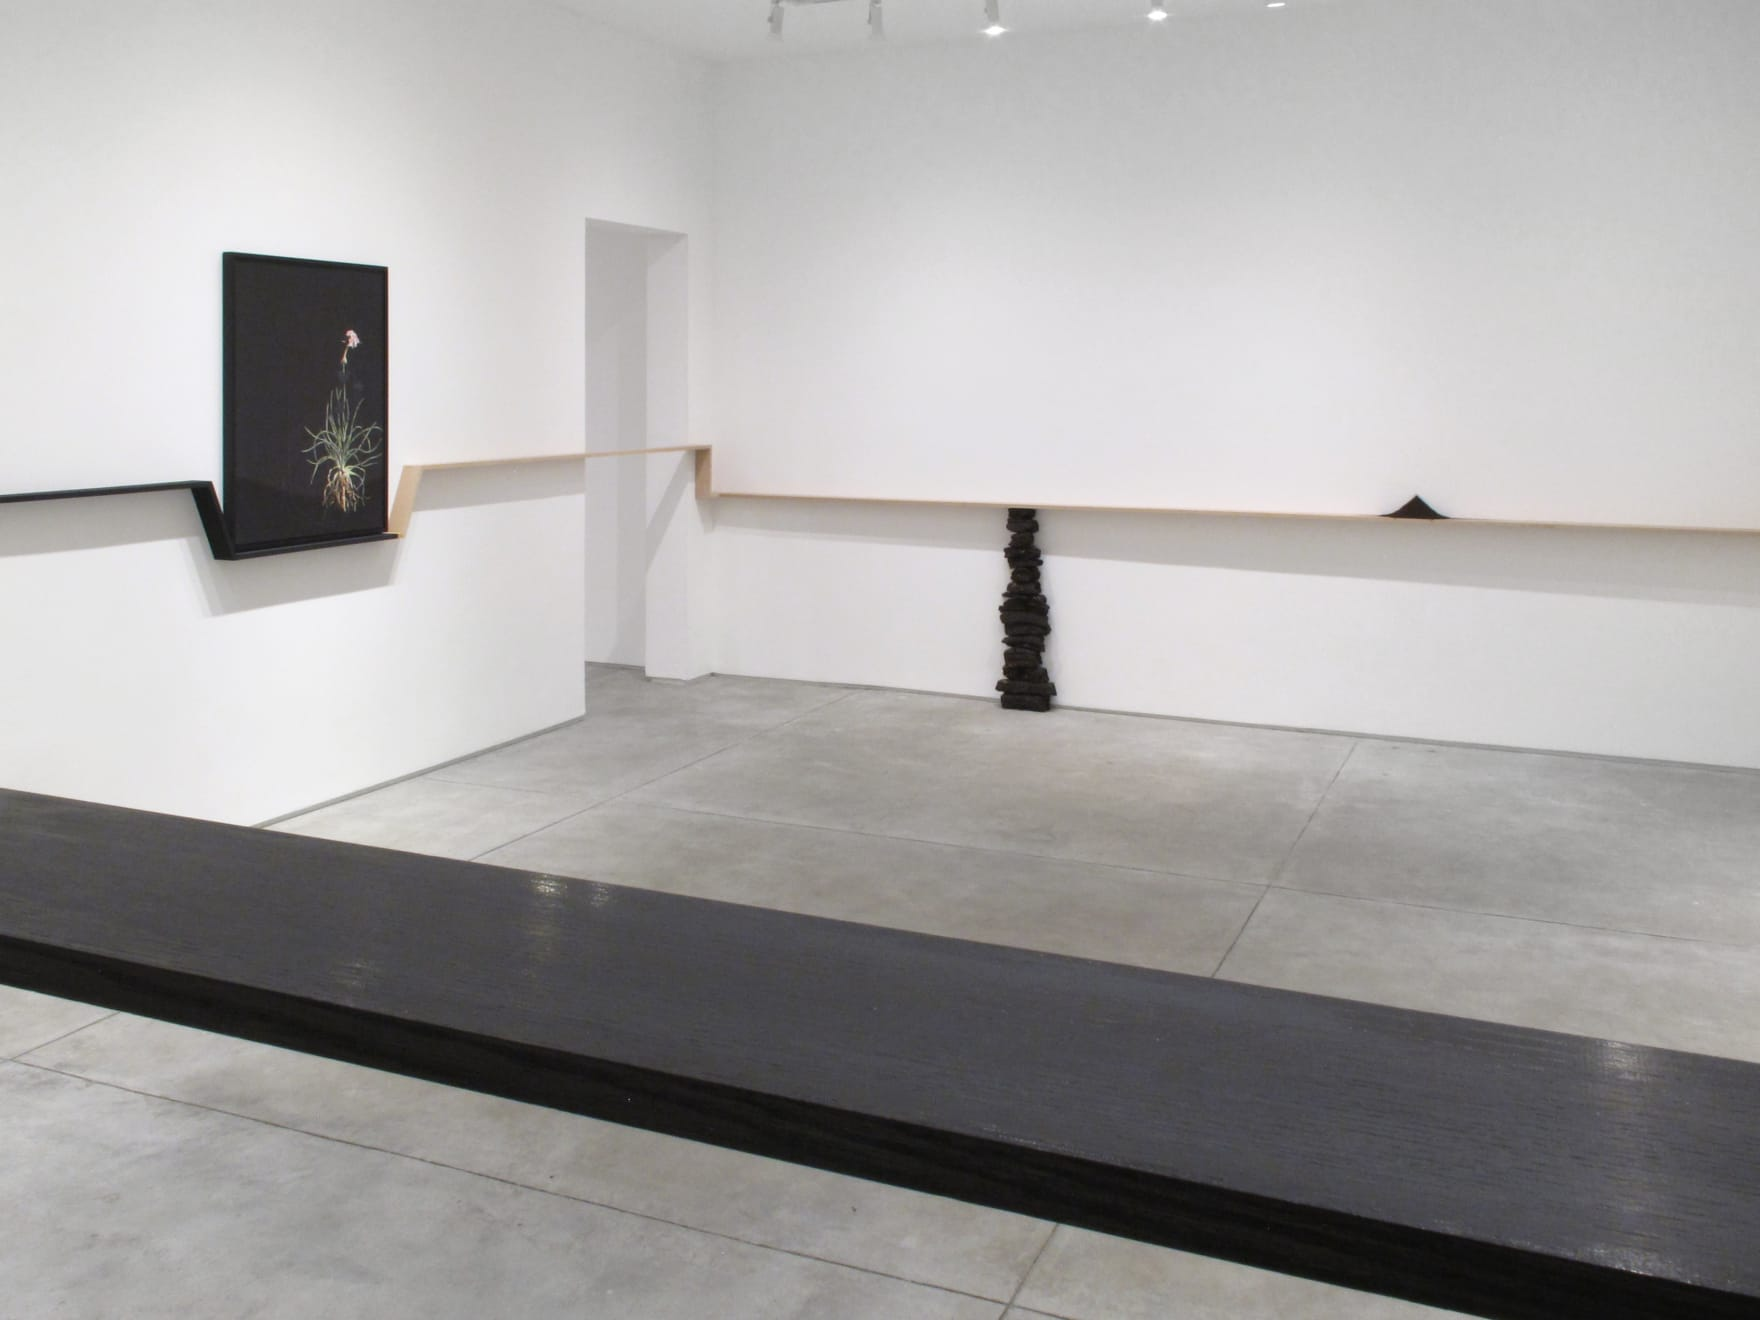 Katrina Moorhead, Dark Botanical installed at left in her solo exhibition, seapinksea, 2019